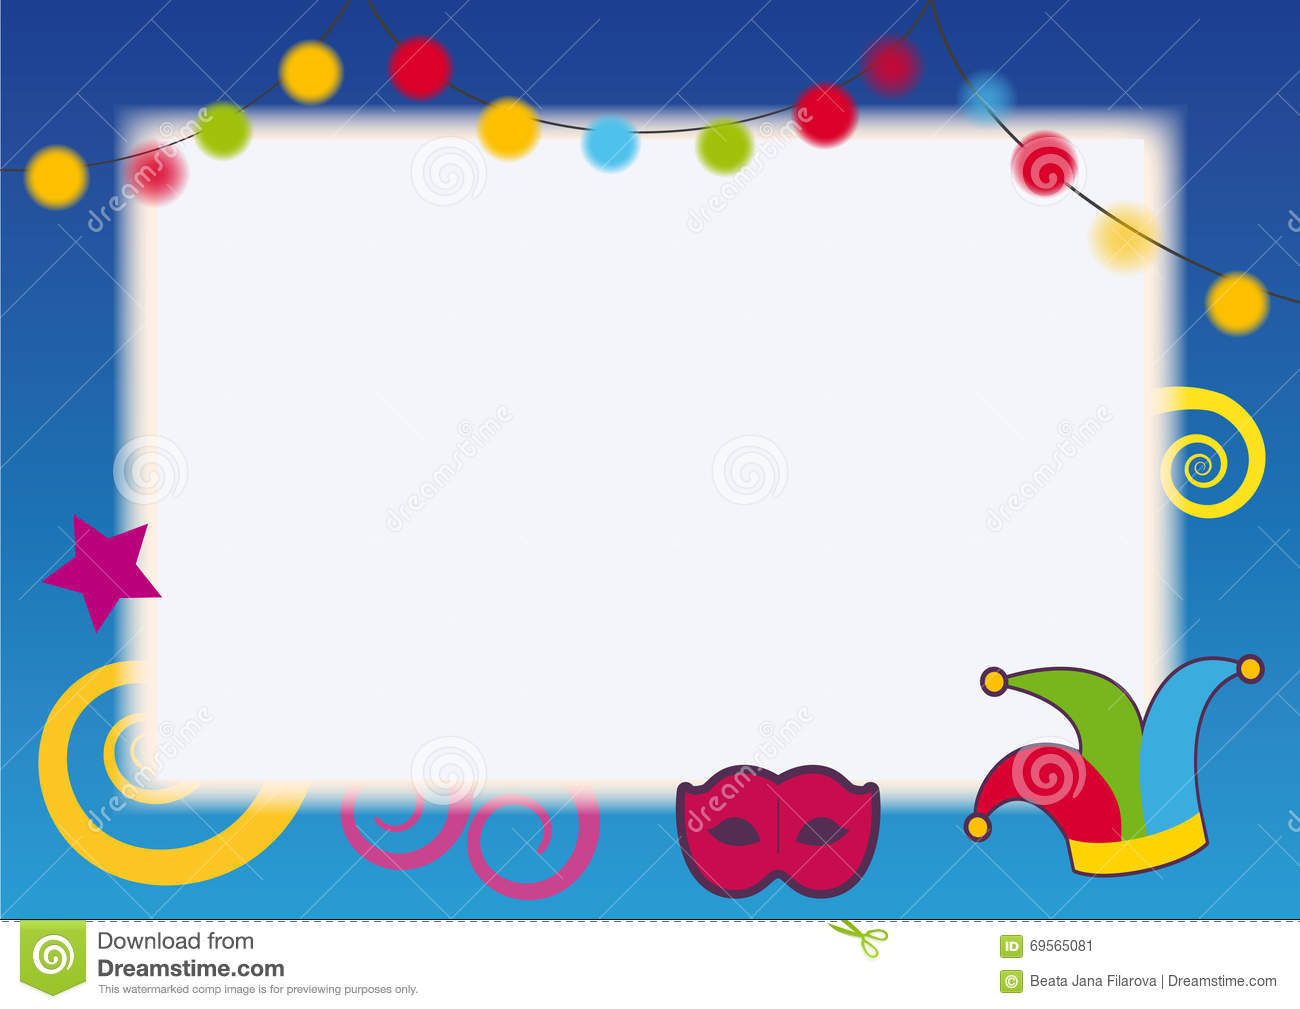 Festival party frame stock vector. Illustration of greeting - 69565081